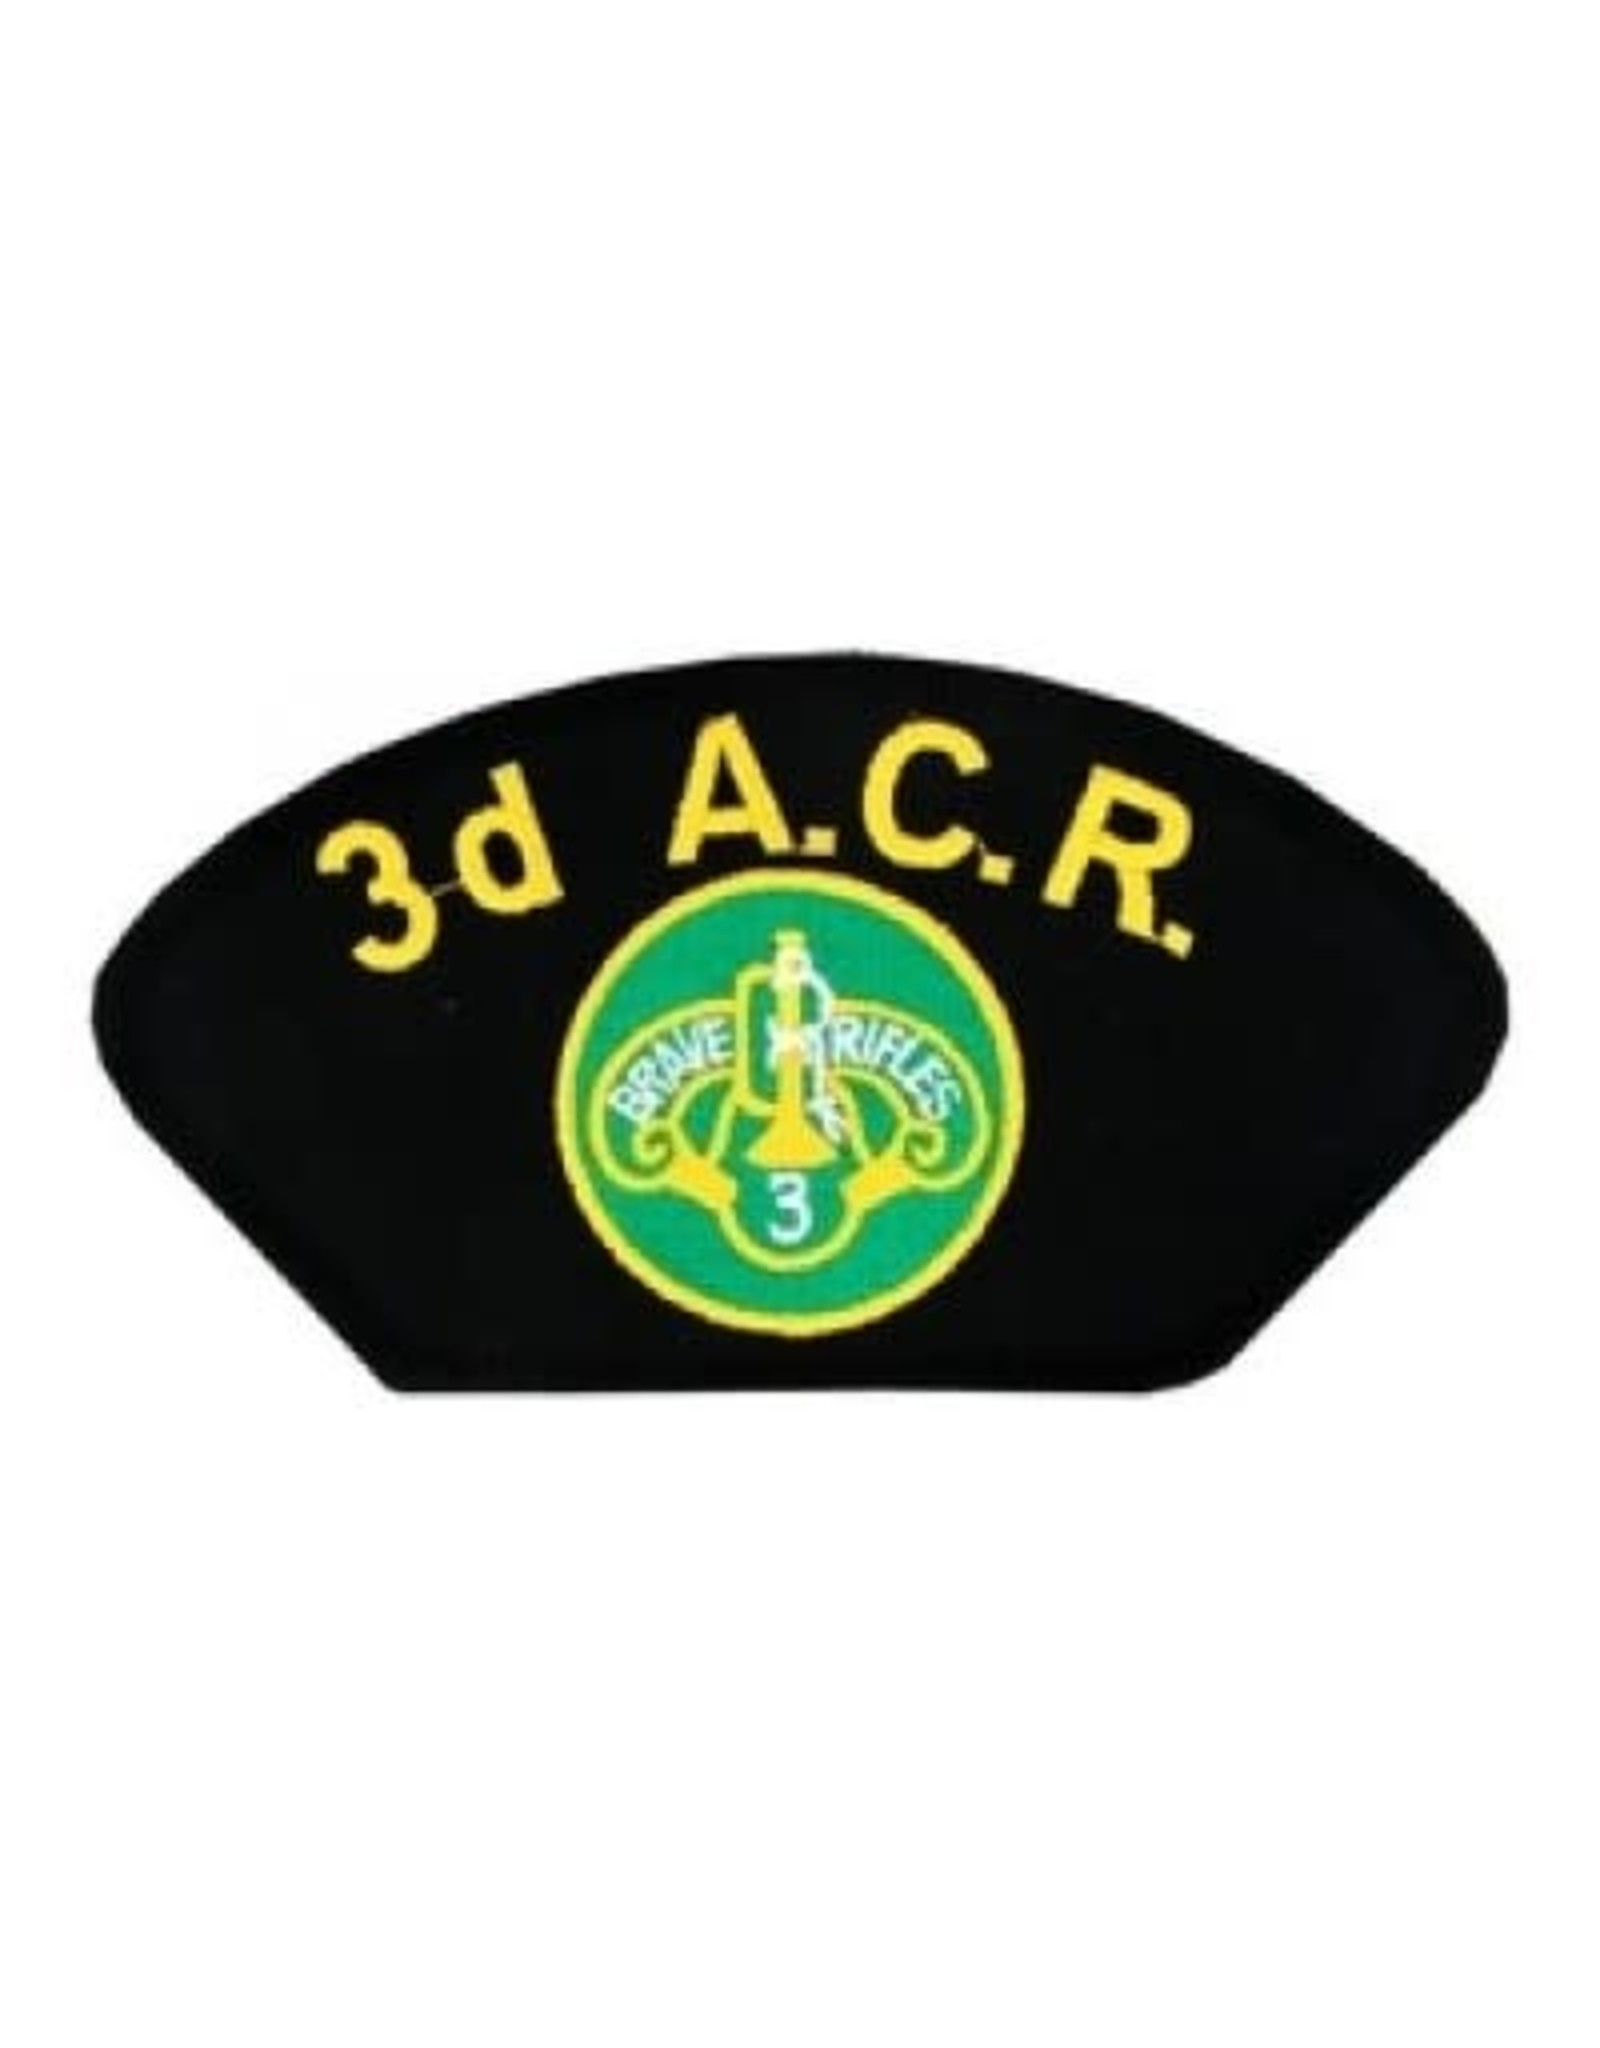 """MidMil Embroidered 3rd Armored Cavalry Regiment Patch with Emblem 5.2"""" wide x 2.7"""" high Black"""